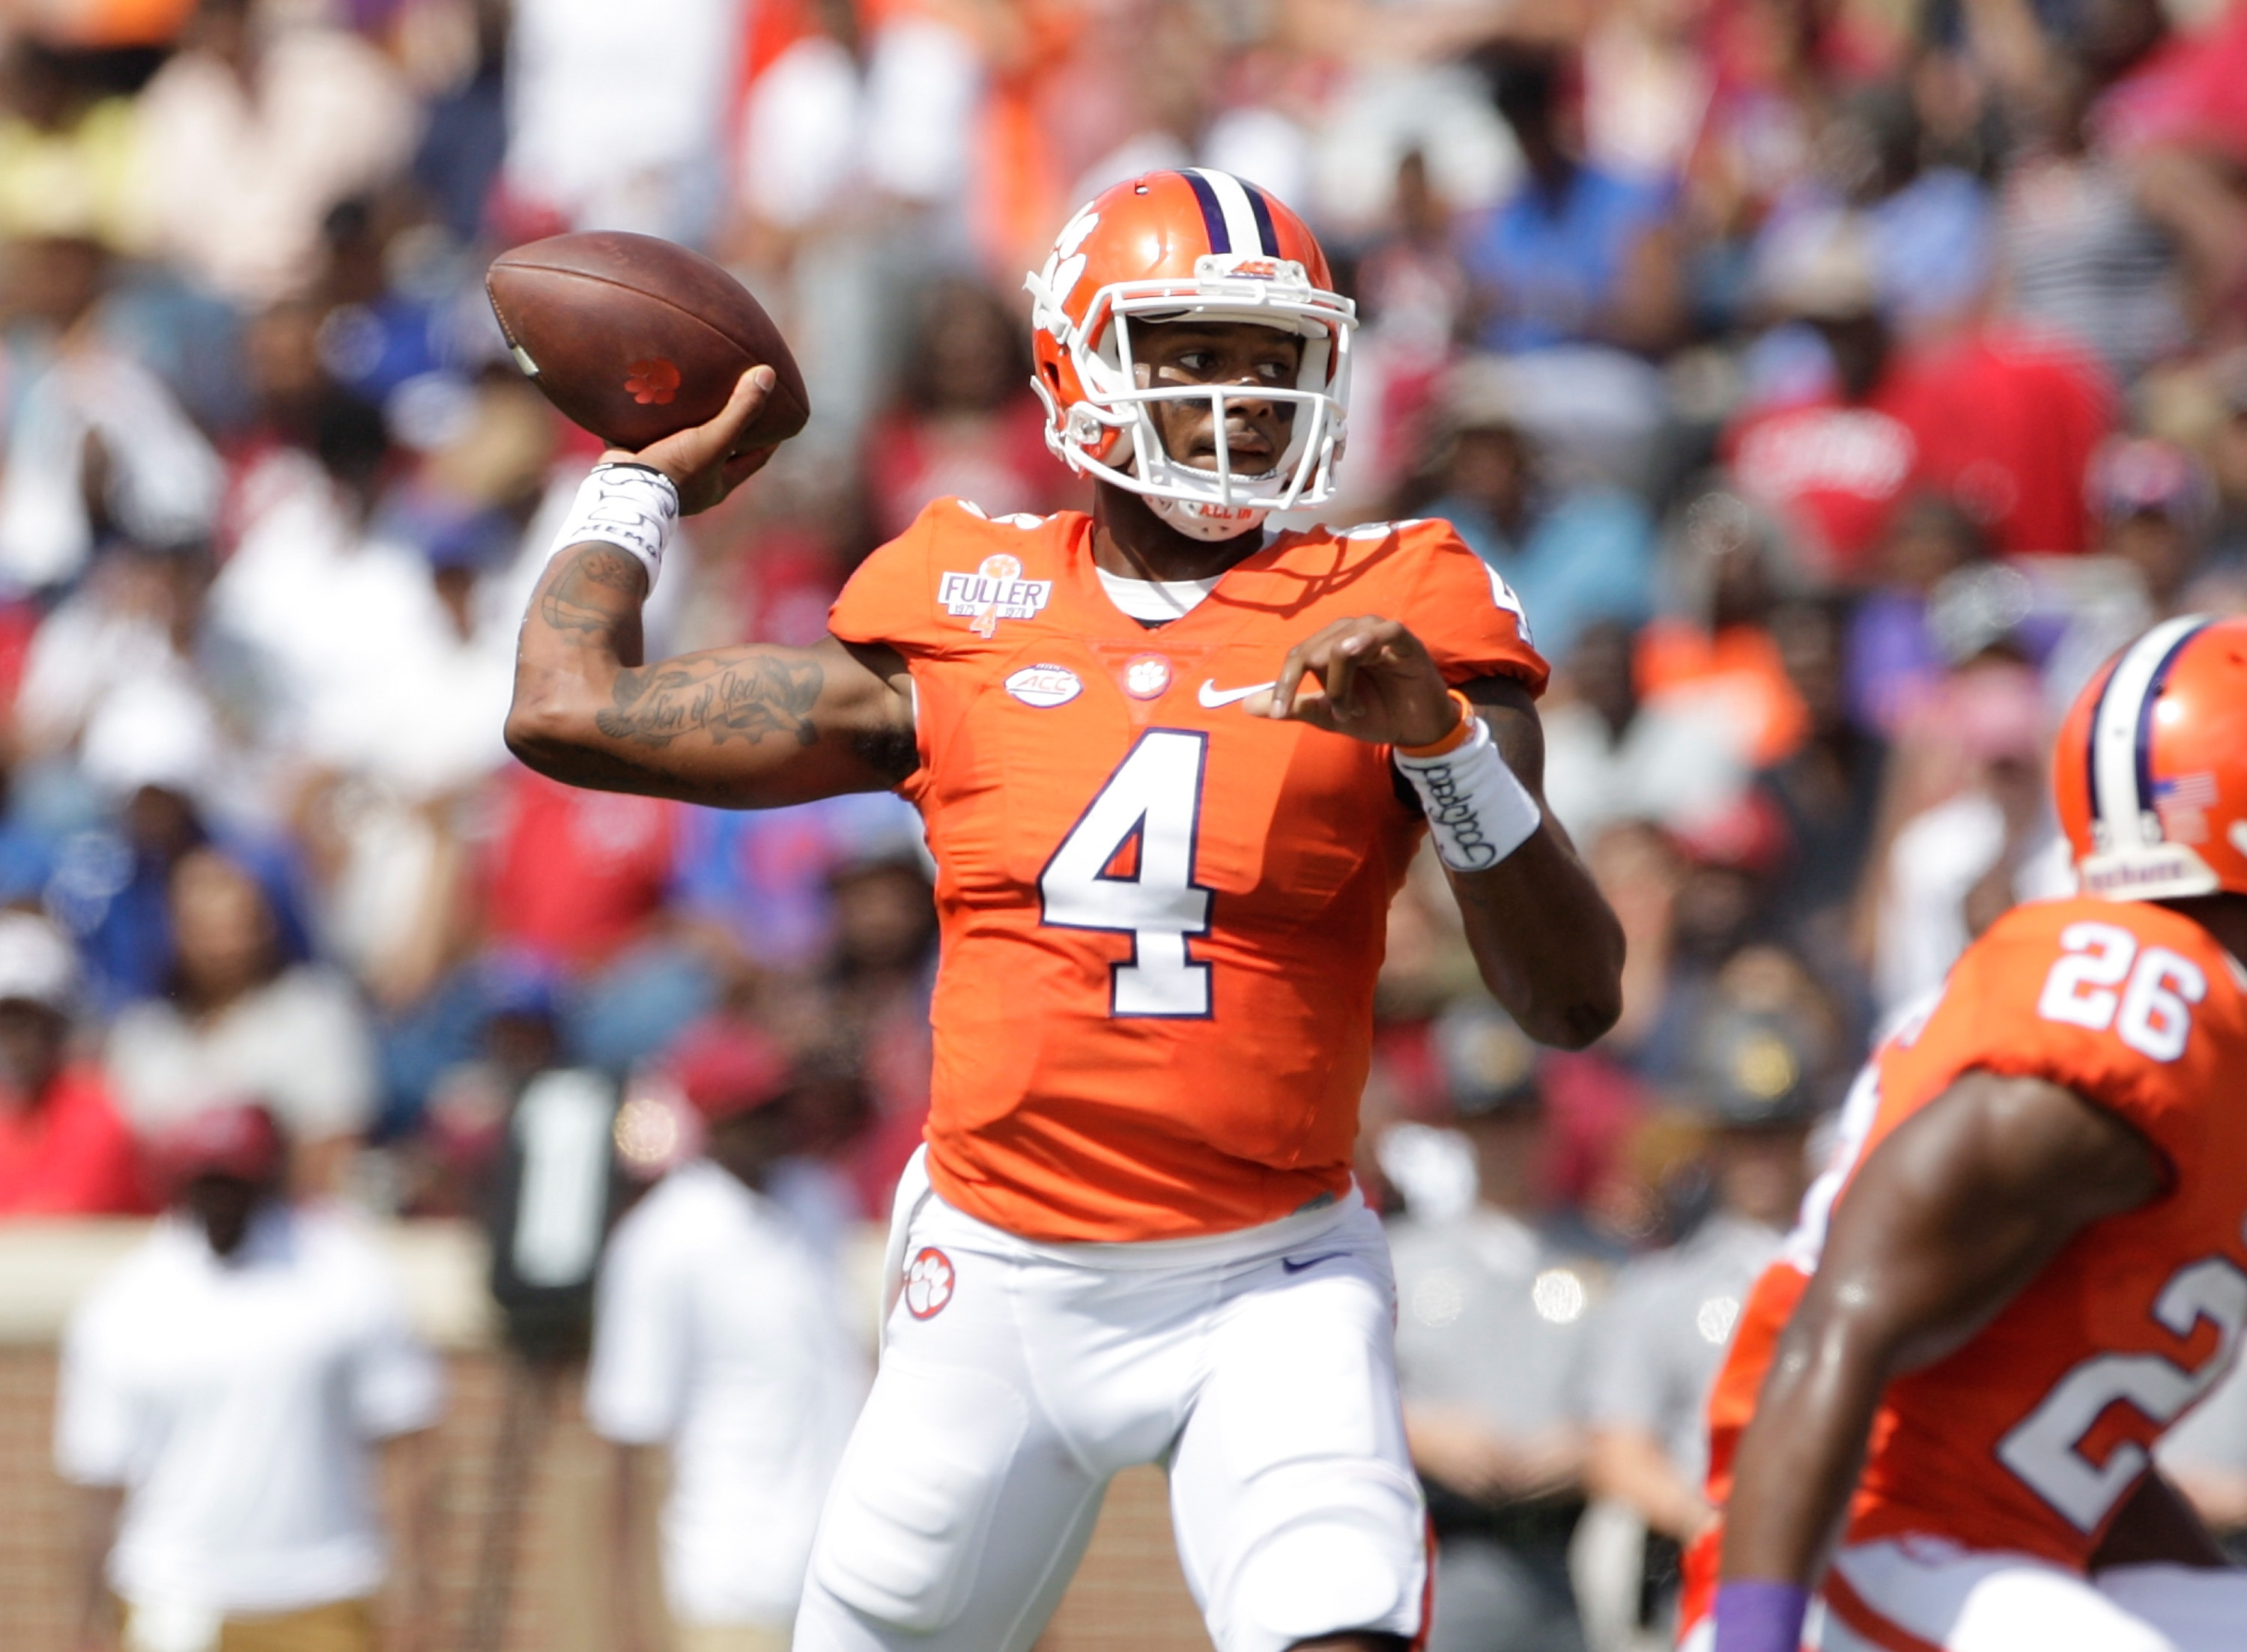 Deshaun Watson of the Clemson Tigers is a contender for the No. 1 QB in the 2017 NFL draft.